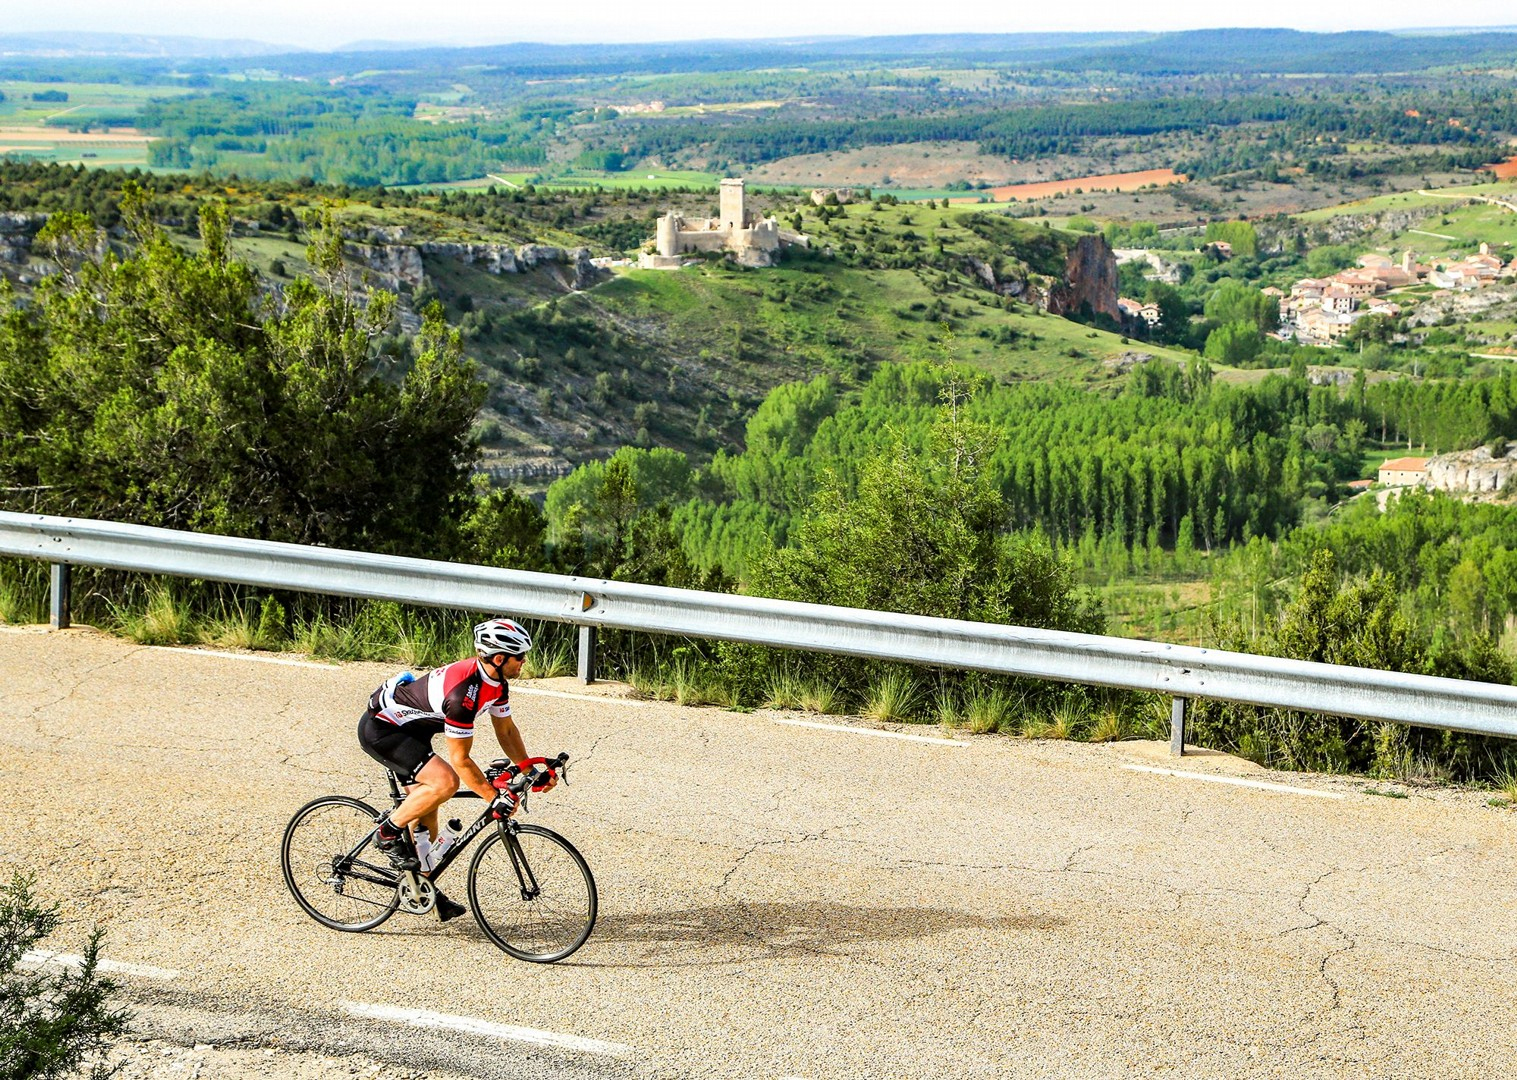 16-day-cycling-holiday-from-north-to-south-of-spain-saddle-skedaddle.jpg - Spain - Basque Country to Andalucia - North to South (16 Days) - Guided Road Cycling Holiday - Road Cycling